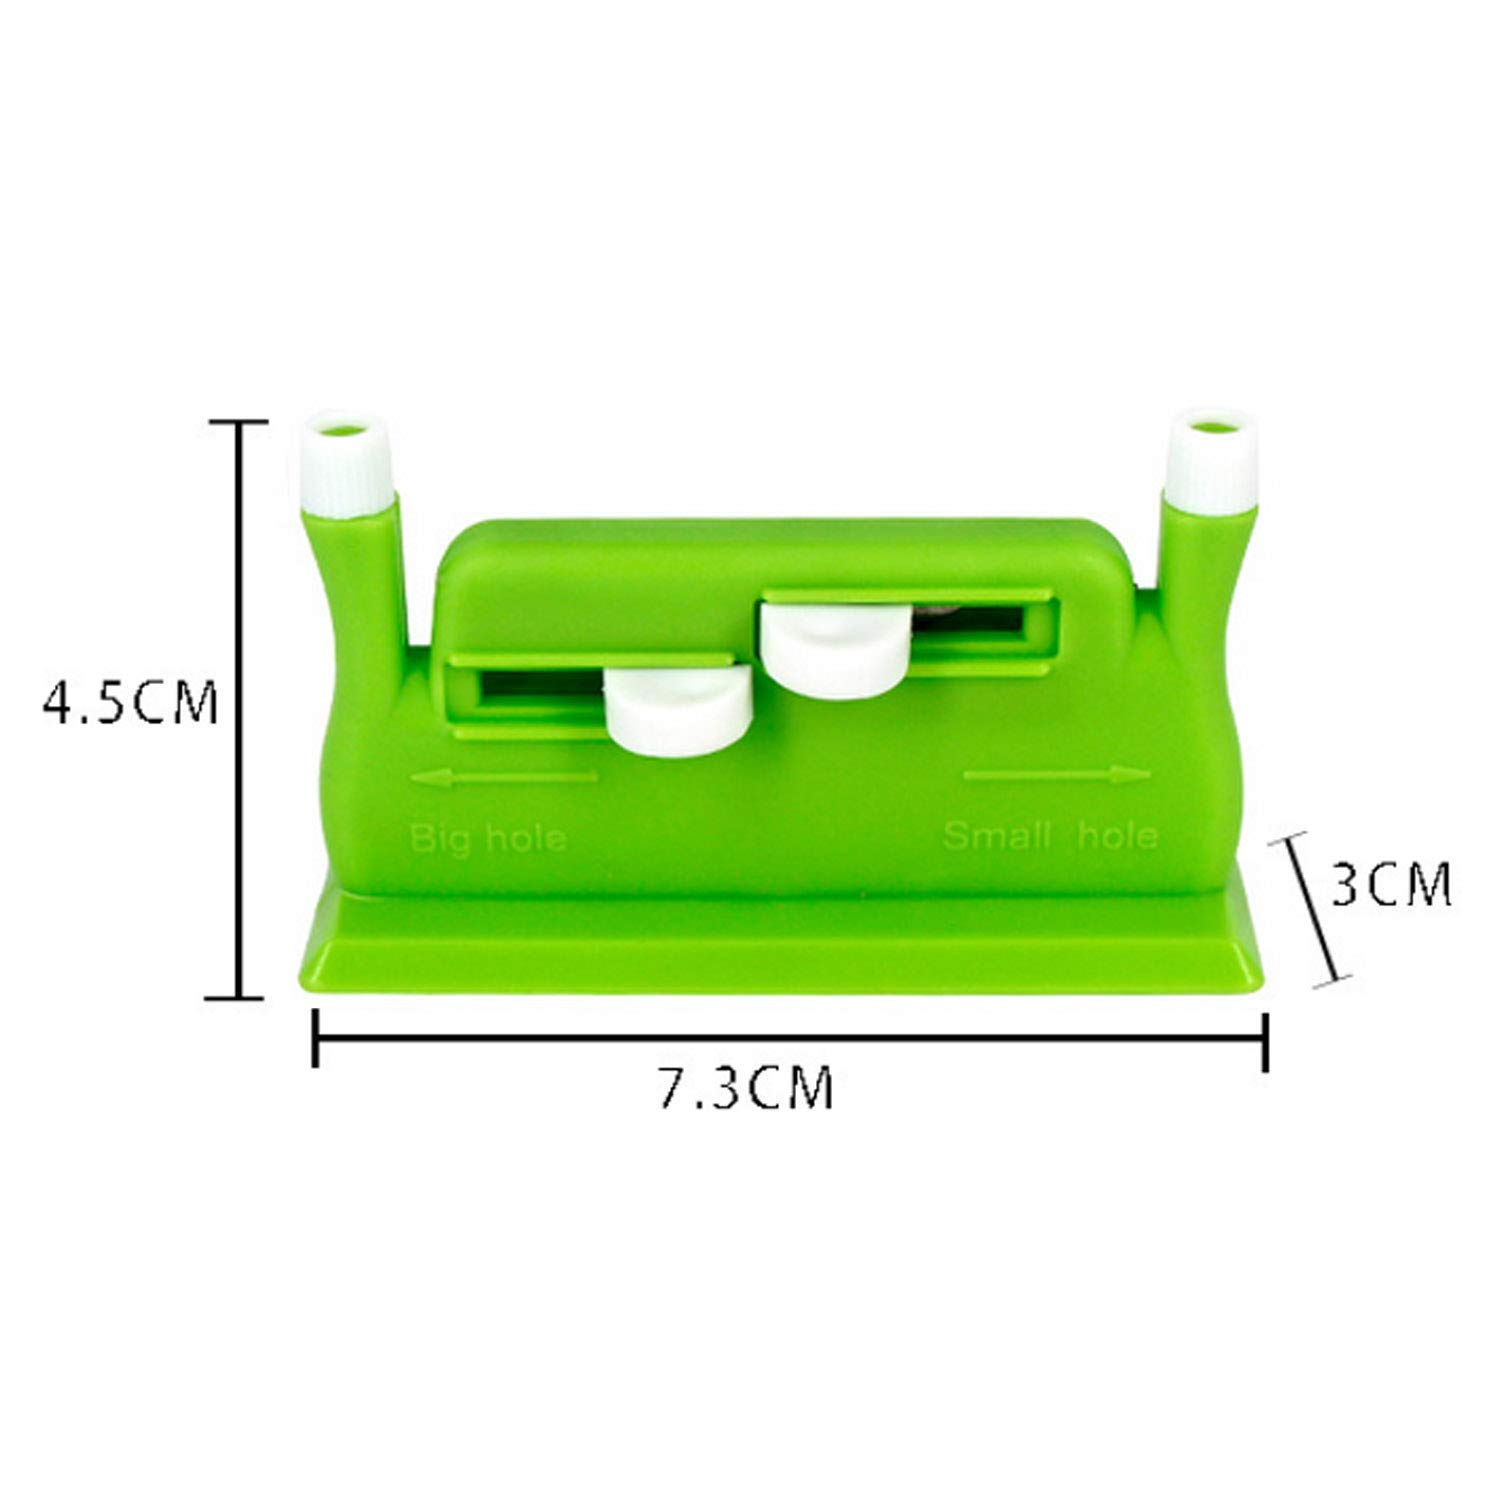 Migavan Useful Needle Threader Hand Machine Sewing Stitch Insertion Tool with 5 Needles for Sewing Accessories Supplies Green